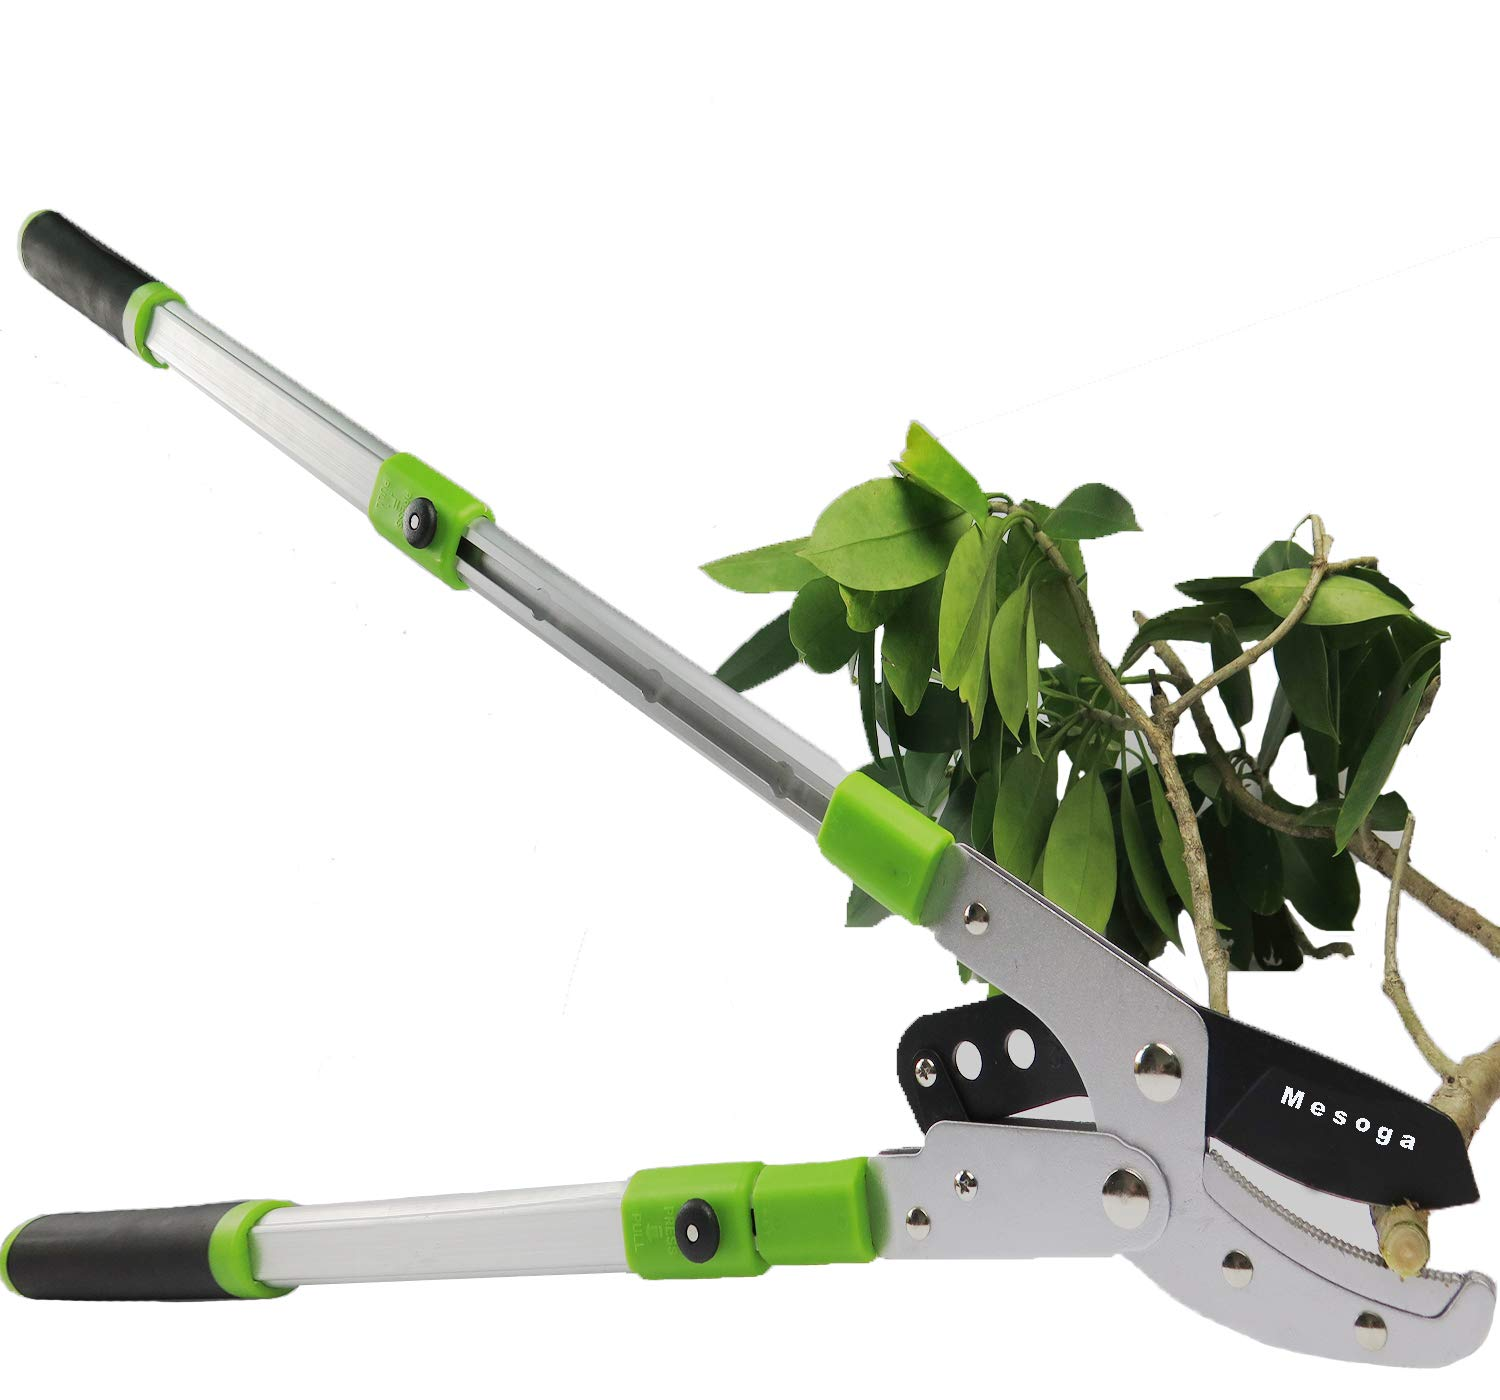 Mesoga Bypass Lopper 5 Sections Extendable Tree Trimming 26 - 41 Inch, Steel SK-5 Straight Anvil Blade Pruner with Leverage Compound Action Handles, 2 Inch Cutting Capacity by Mesoga